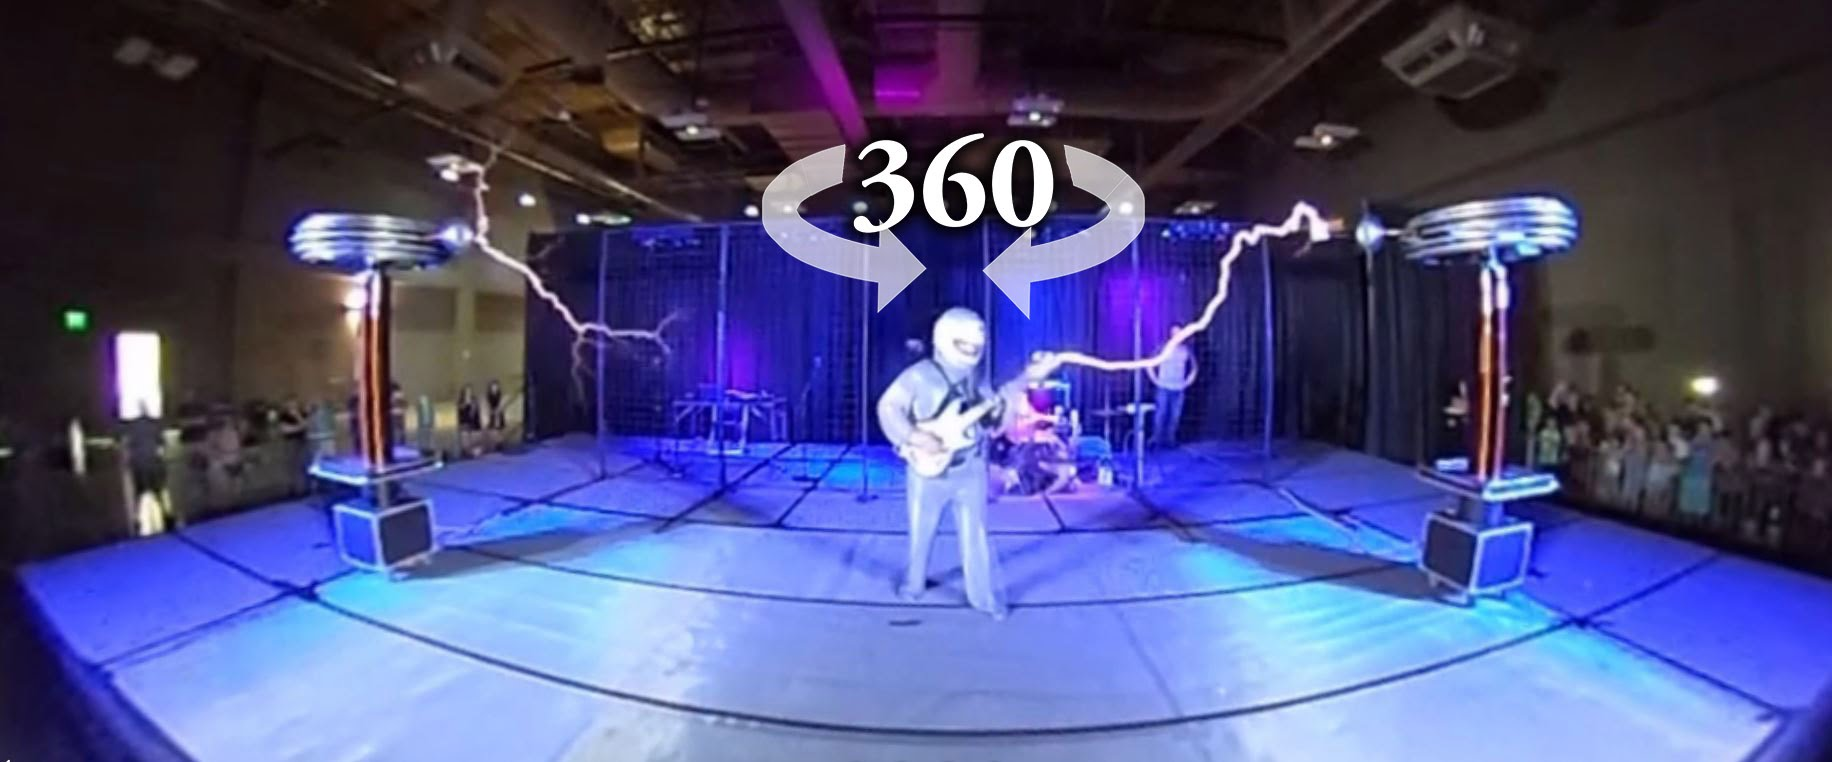 360 Degree Video of ArcAttack Turning Electricity Into Music Using